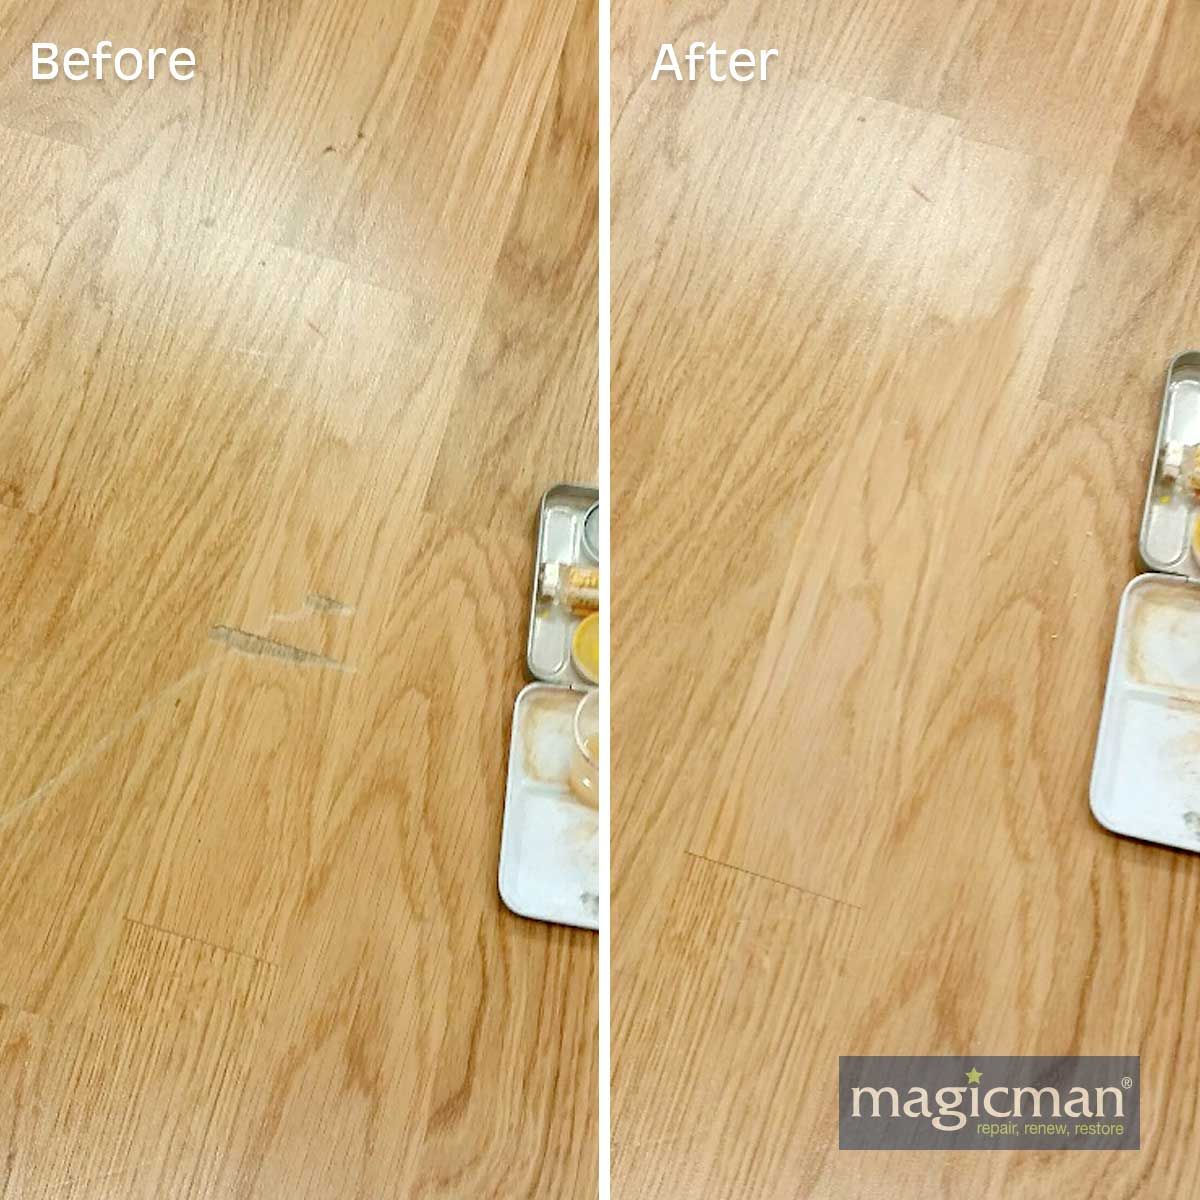 repair repairs wood dreamhomesbyrob flooring com scratched floors pin floor scratches